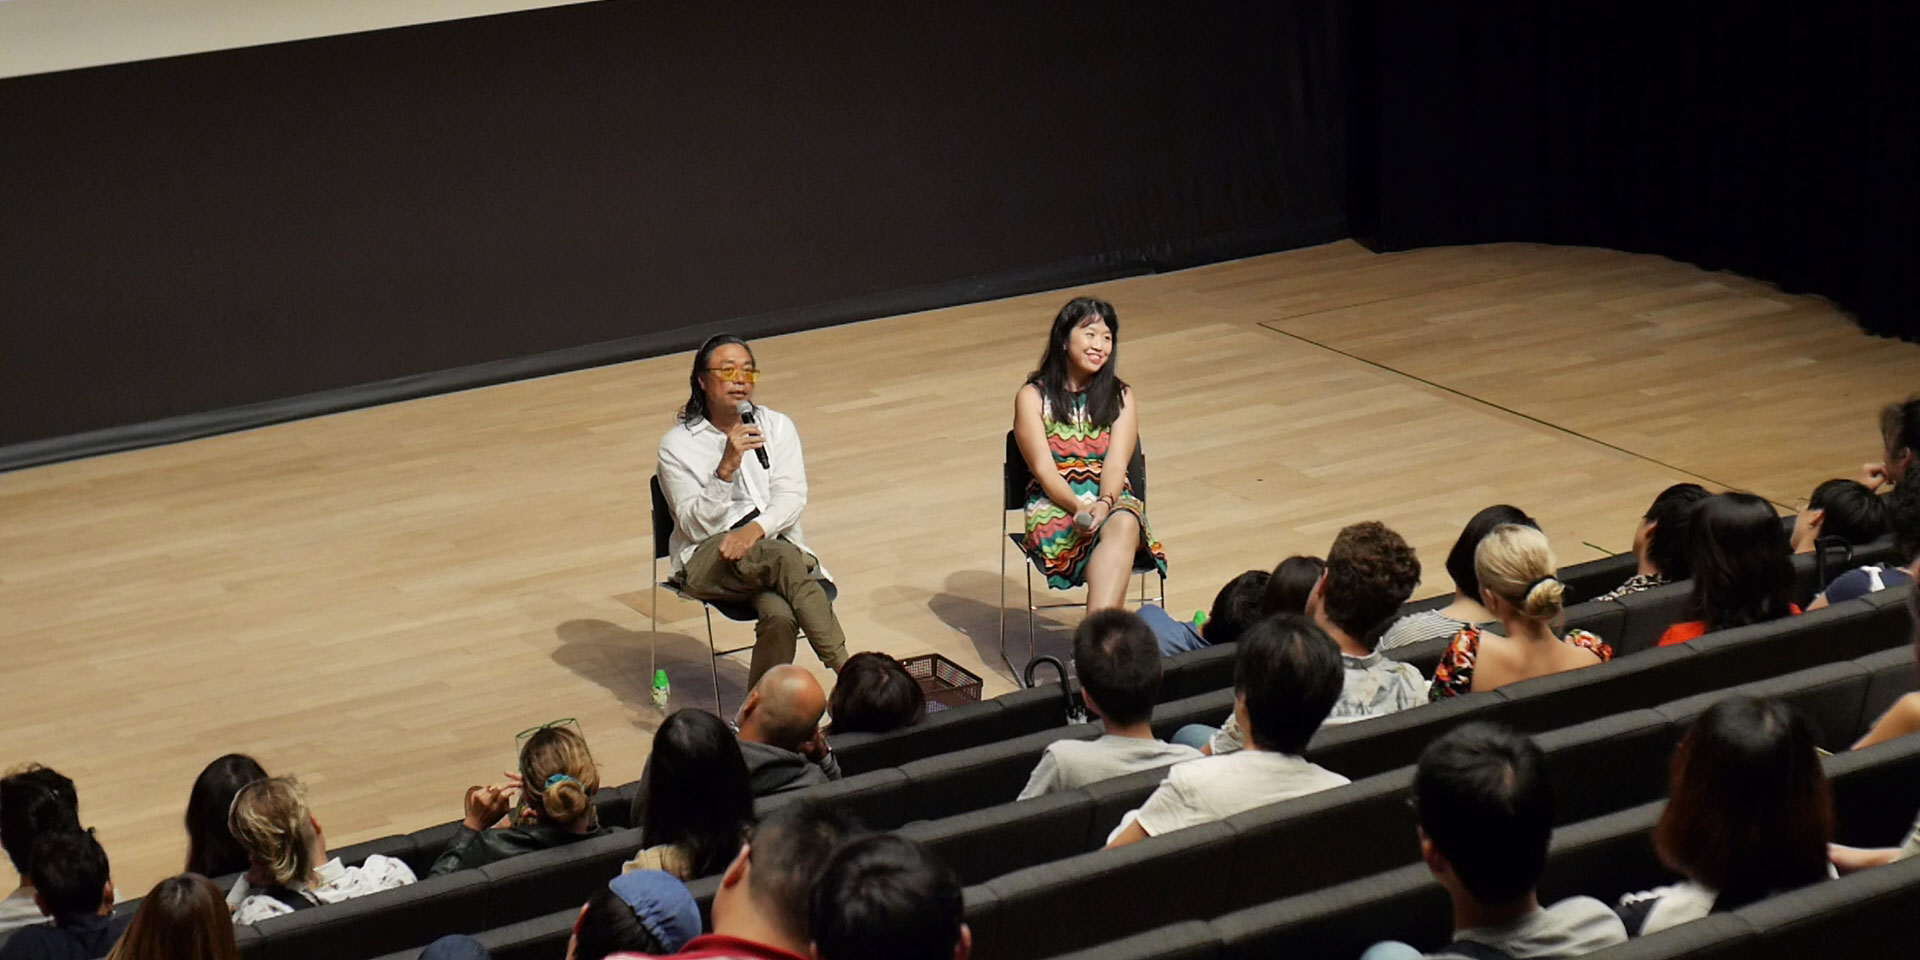 Rirkrit Tiravanija speaking at Summer Institute